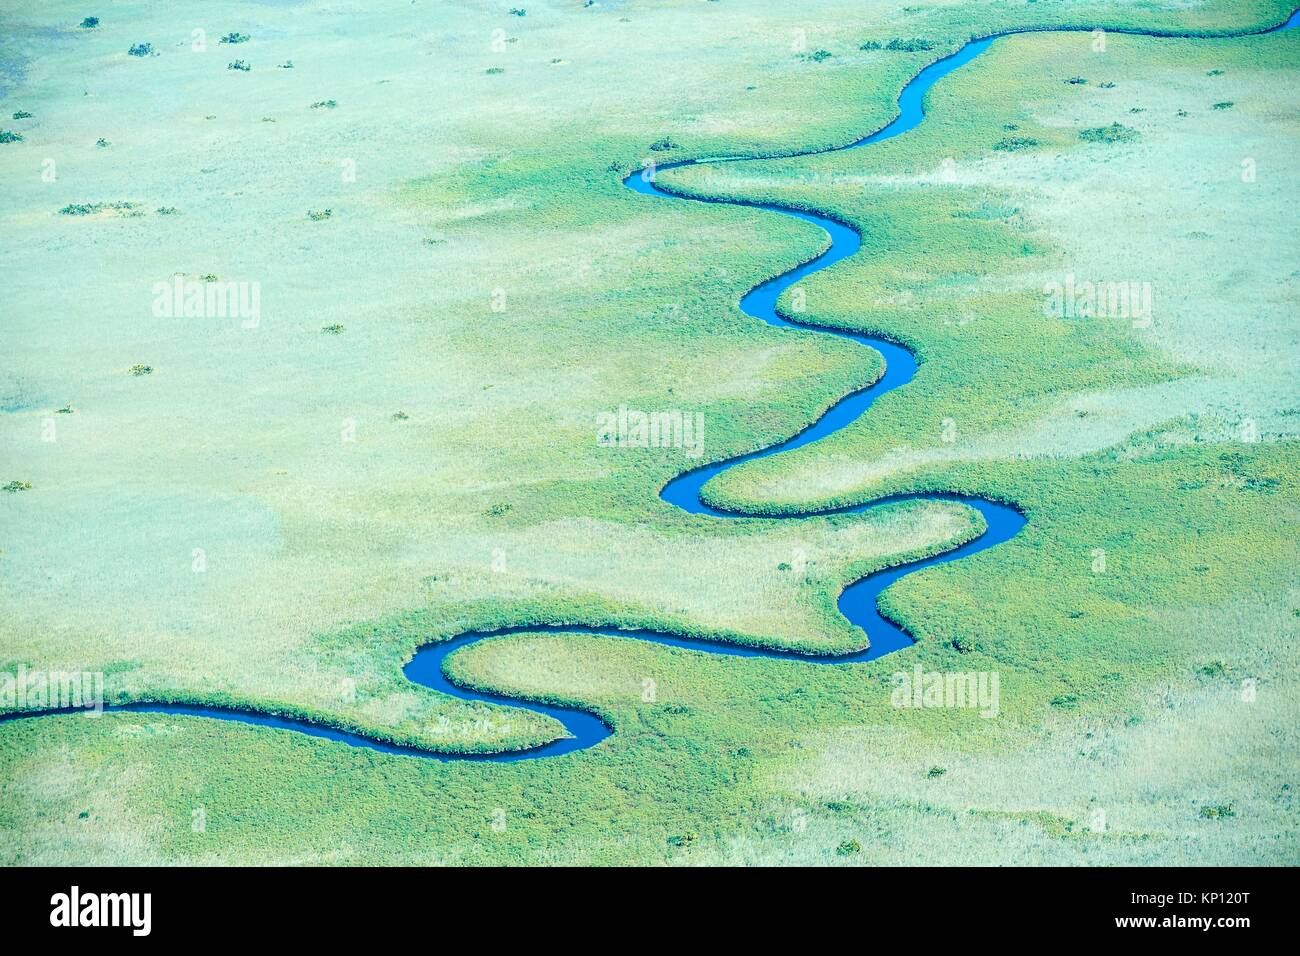 Aerial view of meandering Ngoga channel, Okavango delta, Botswana, Africa. - Stock Image